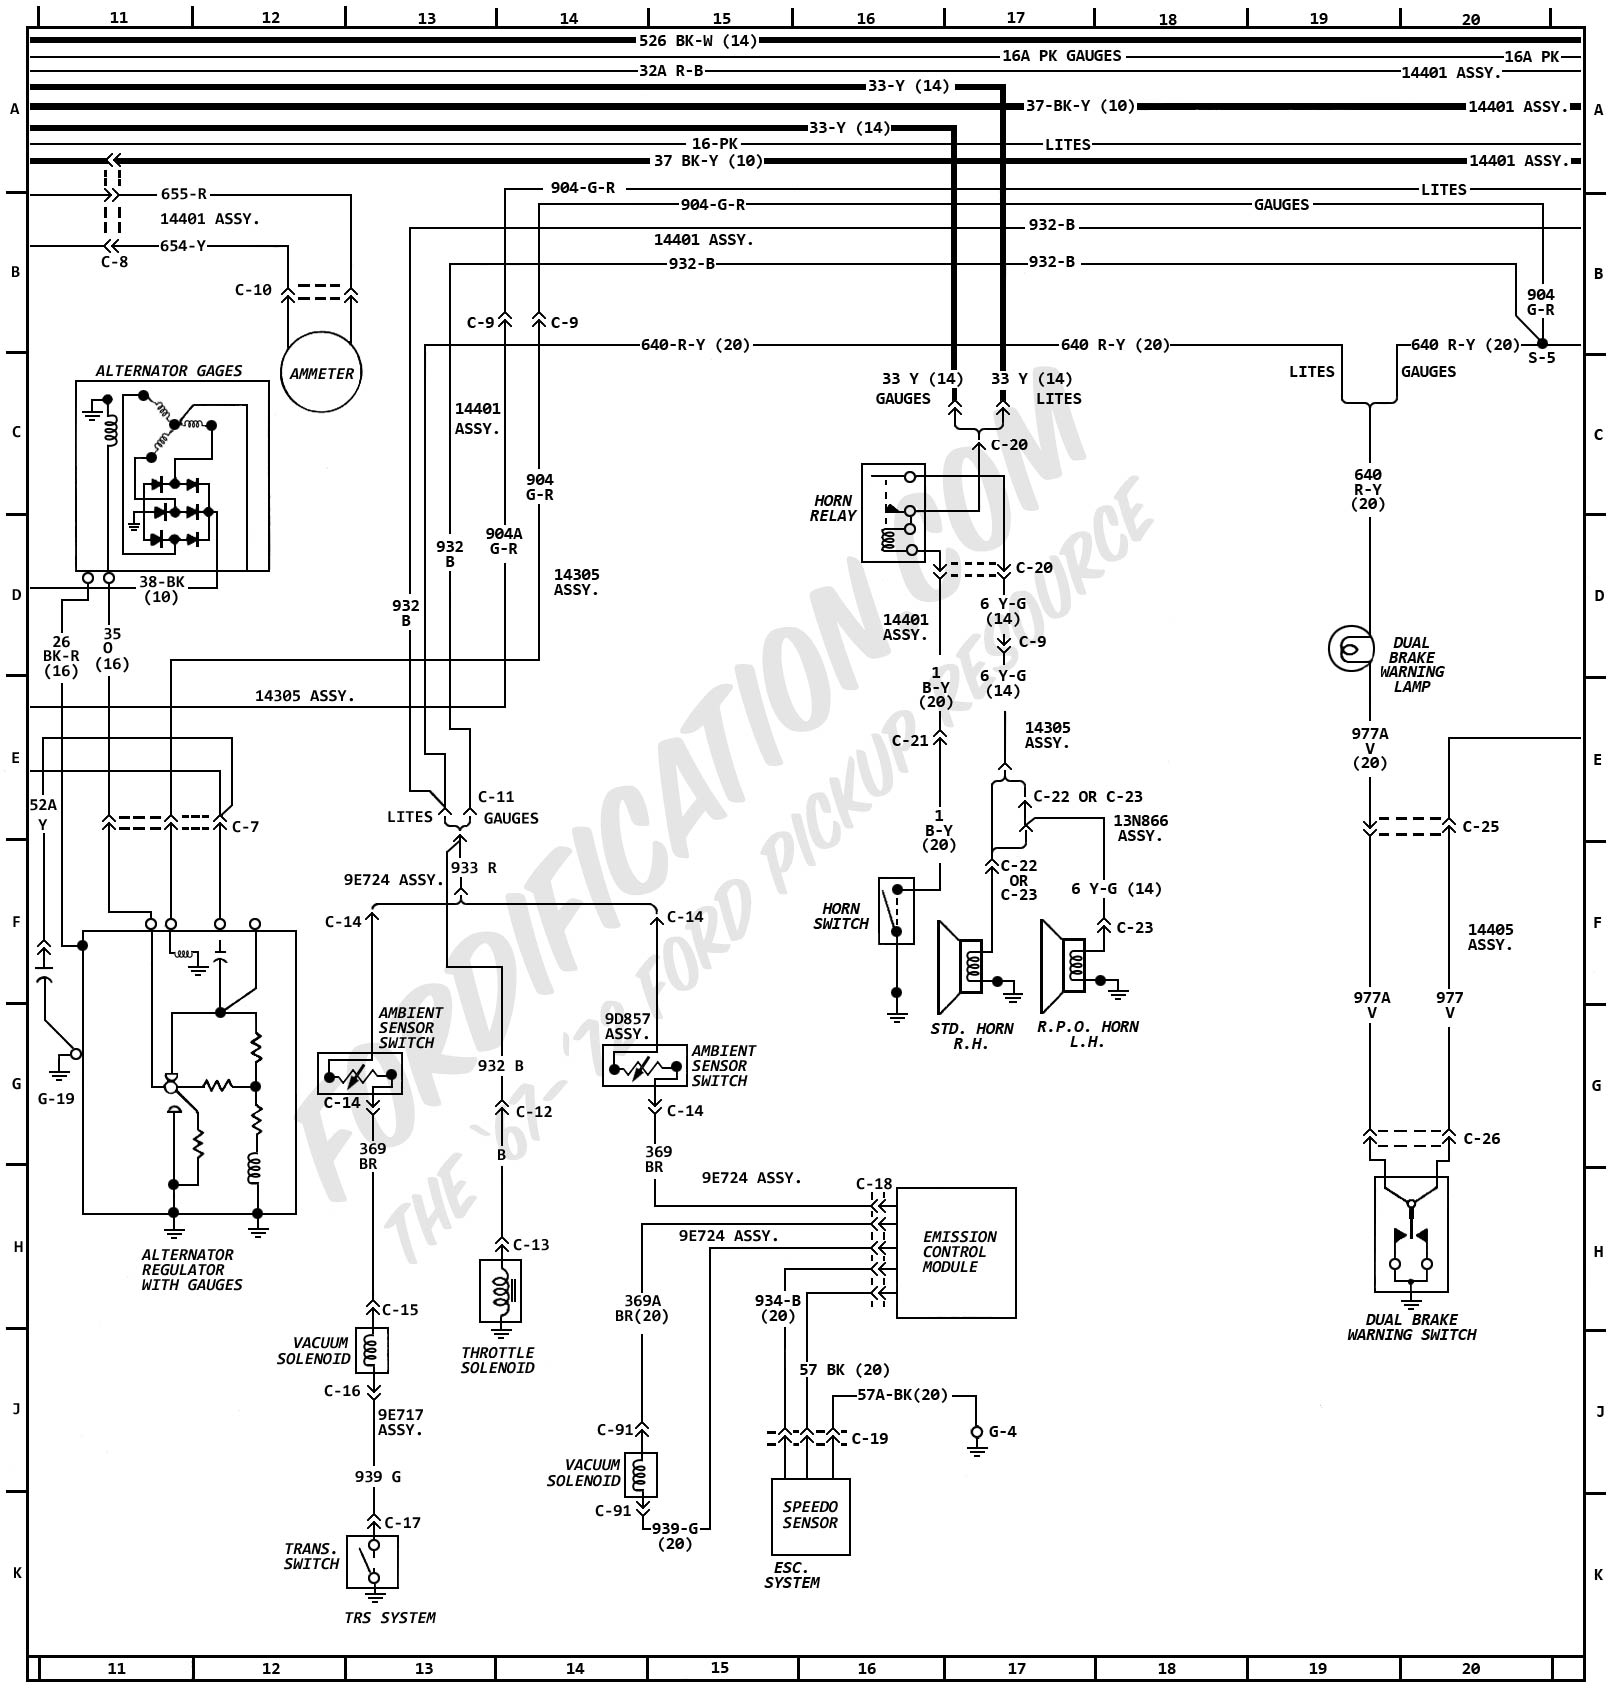 ford truck wire diagram 66 c10 truck wire diagram 1972 ford truck wiring diagrams - fordification.com